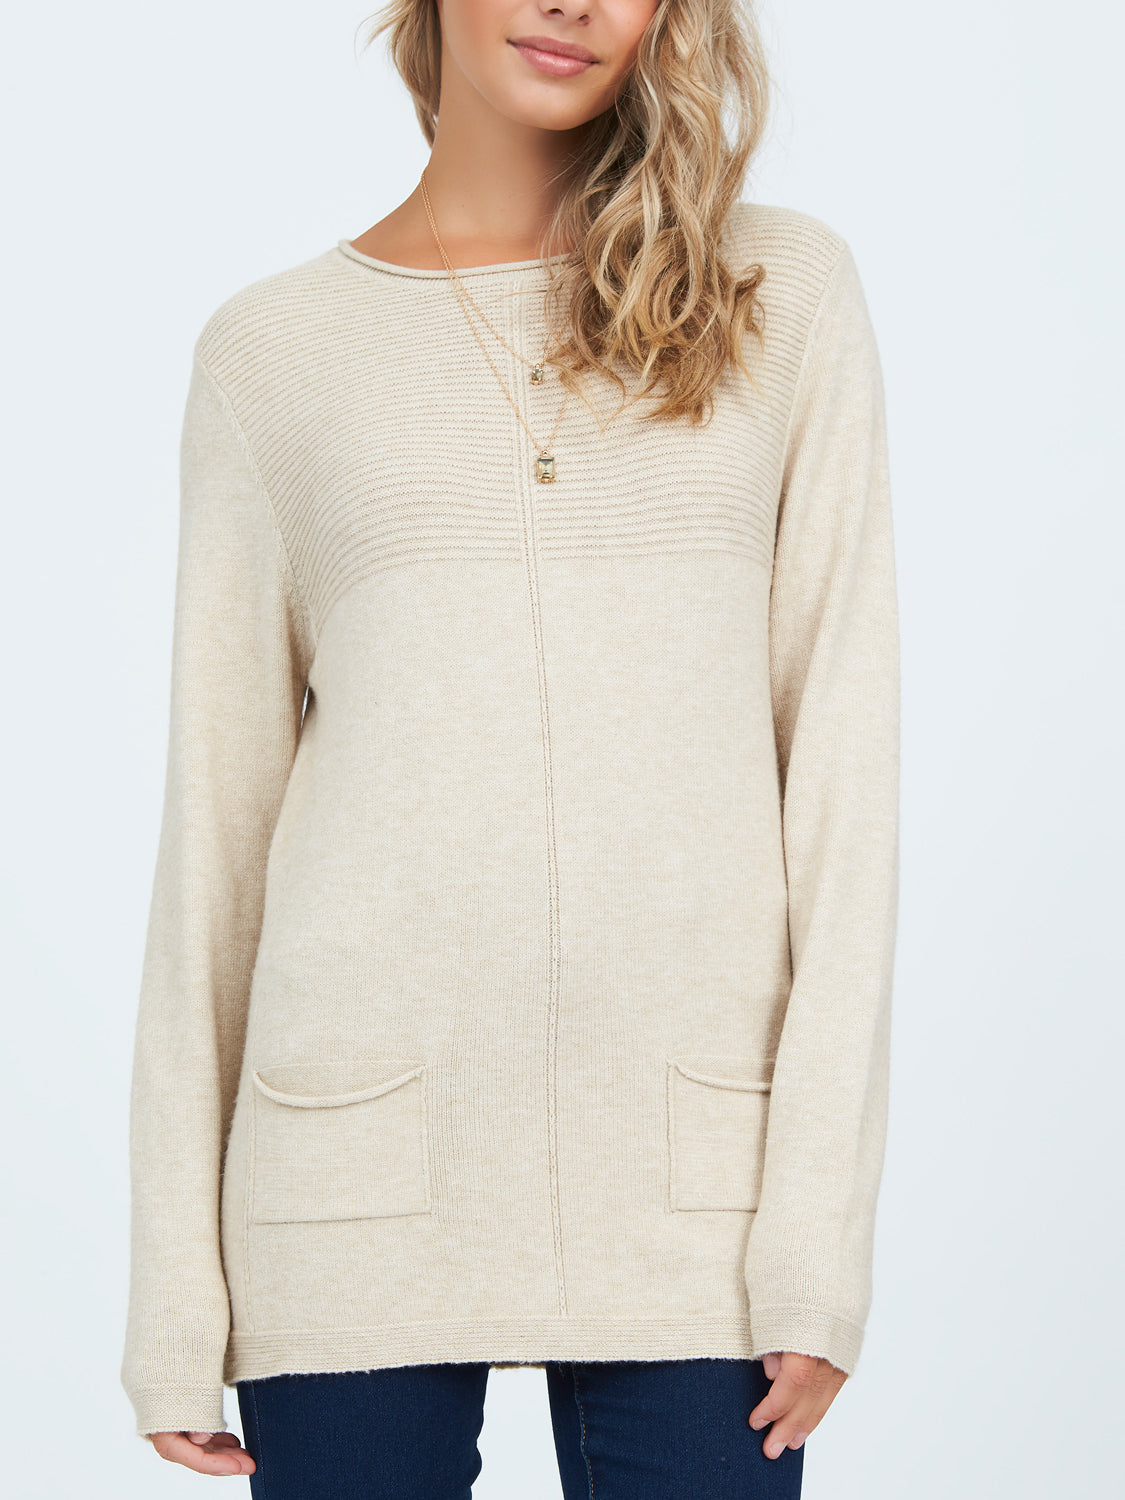 Multistitch Knit Sweater